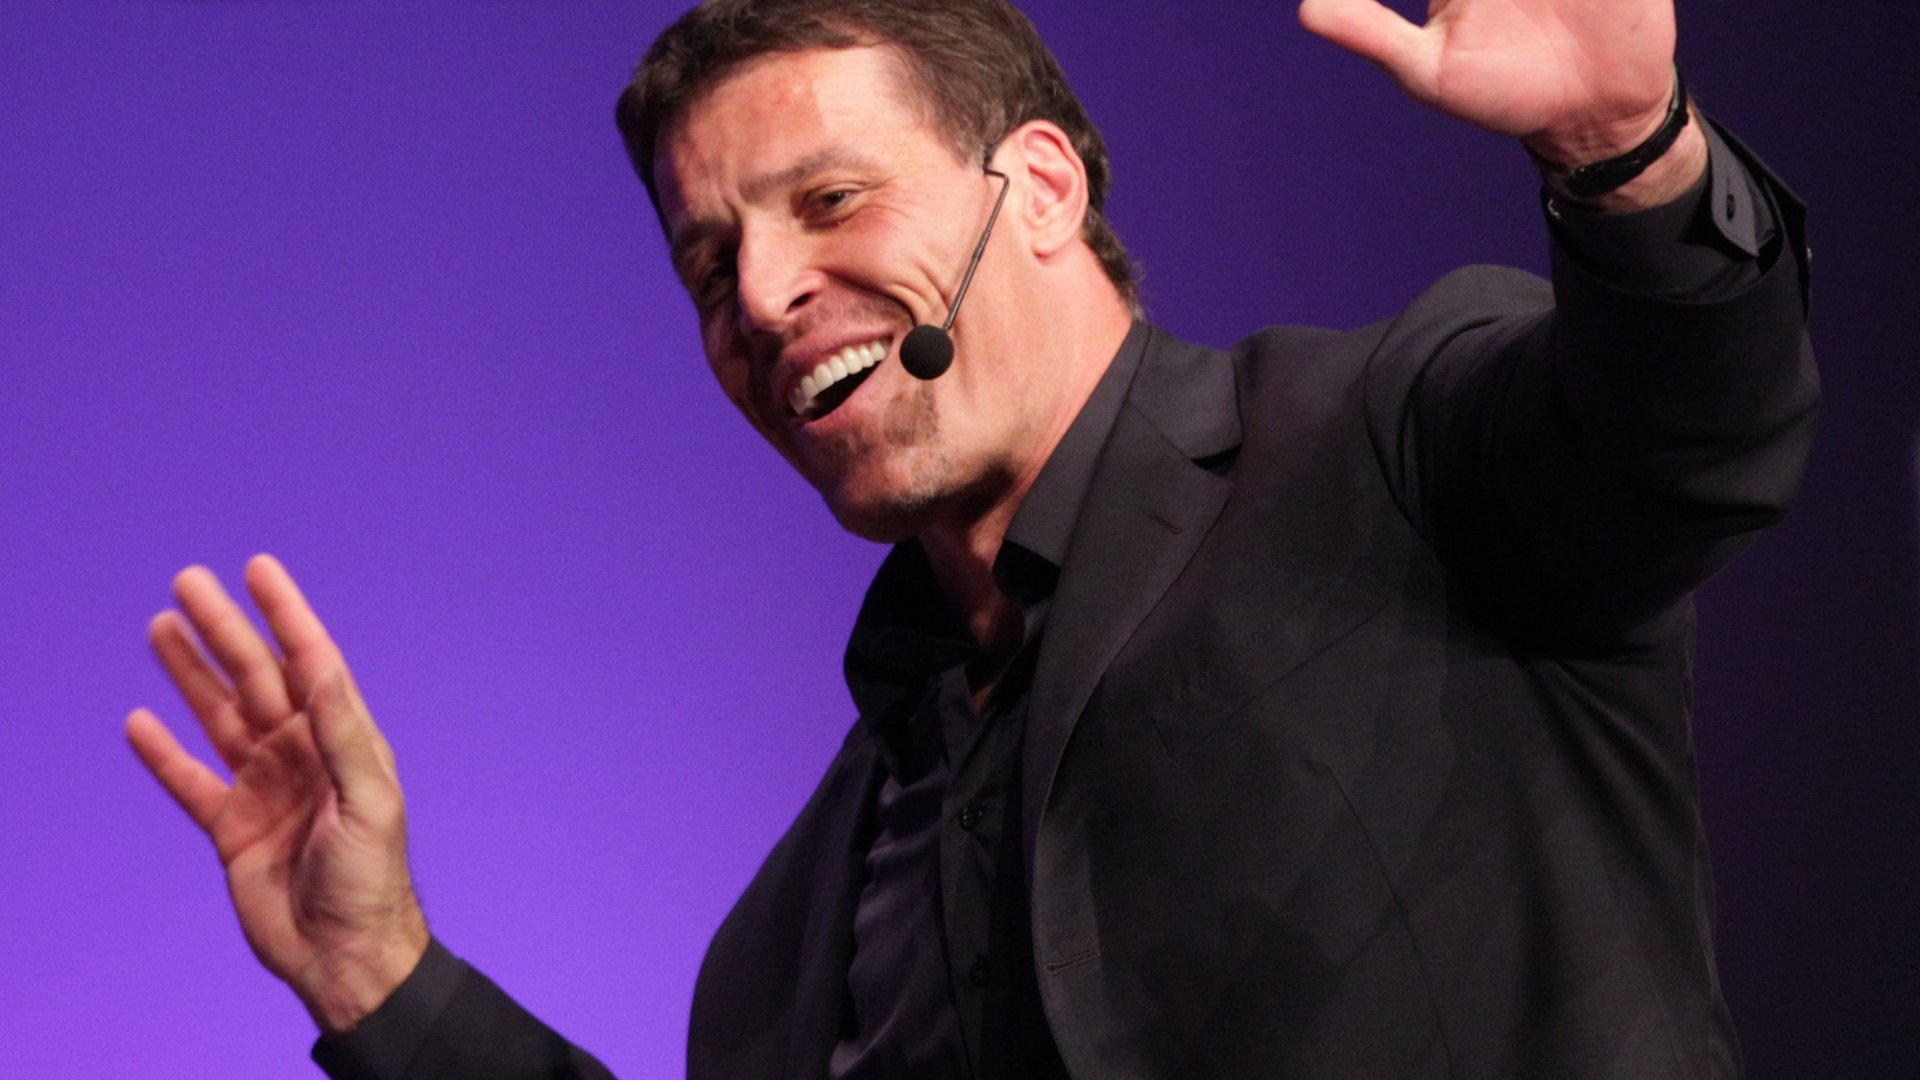 Tony Robbins Says This Little-Known Therapy is One of the Most Powerful Sources of Transformation He Has Ever Experienced